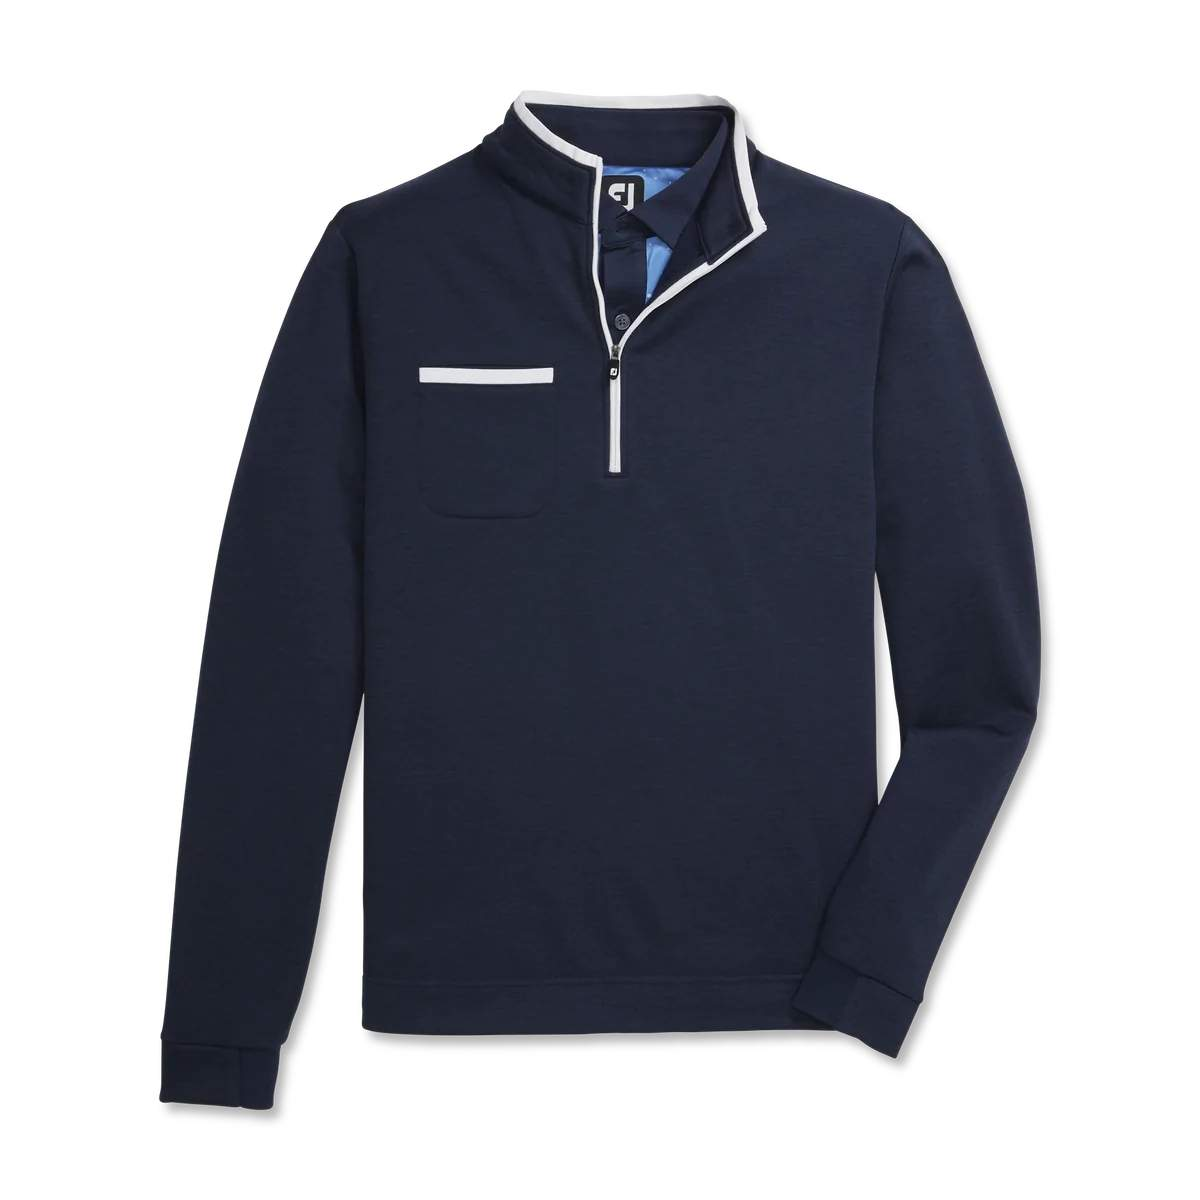 FootJoy Men's Fleece 1/4 Zip Contrast Trim Navy Pullover